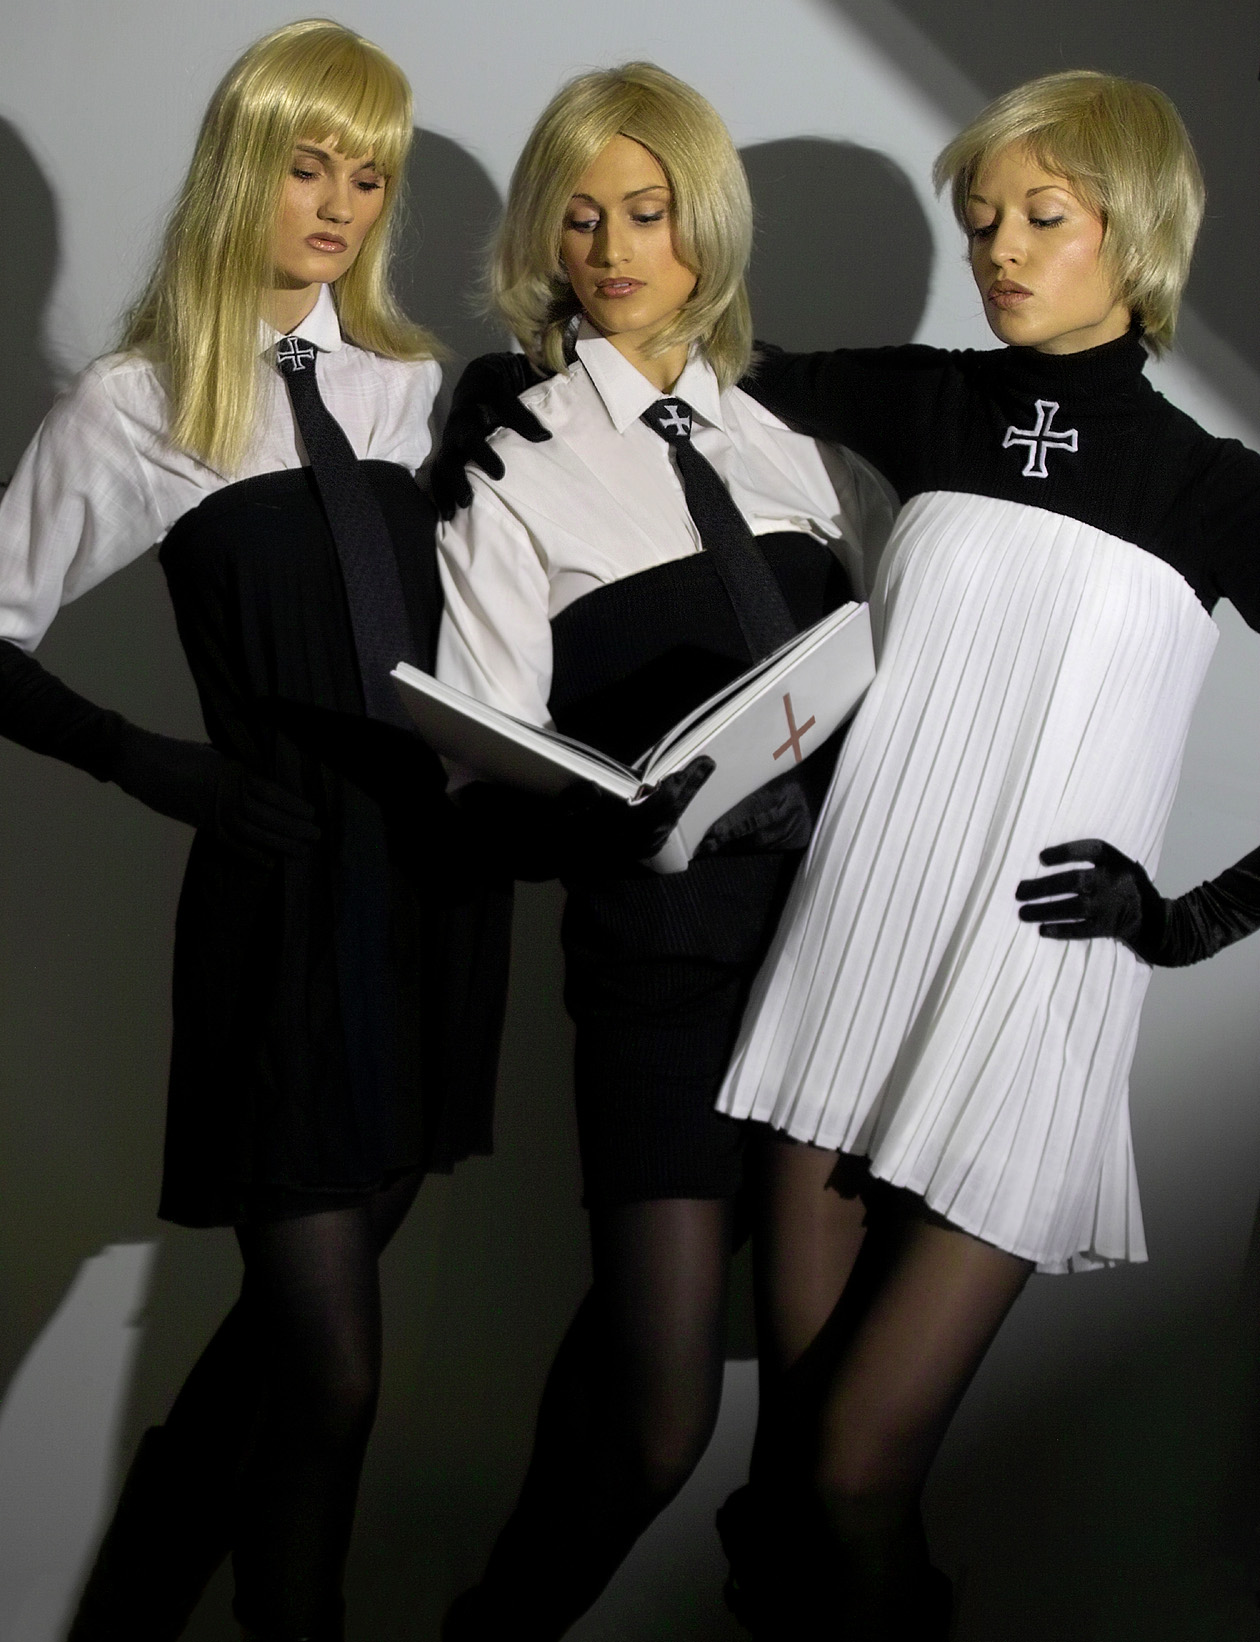 The fashion model`s Franziska Scheffer, Juliana Schmidt and Vera Gafron in avant-garde dresses and blouses of luxury cotton with cross motives on neck-tie`s and sweater from fashion designer Torsten Amft`s fall / winter 2008 - 2009 trend collection for Berlin Fashion Week - photographer Mark van Straaten